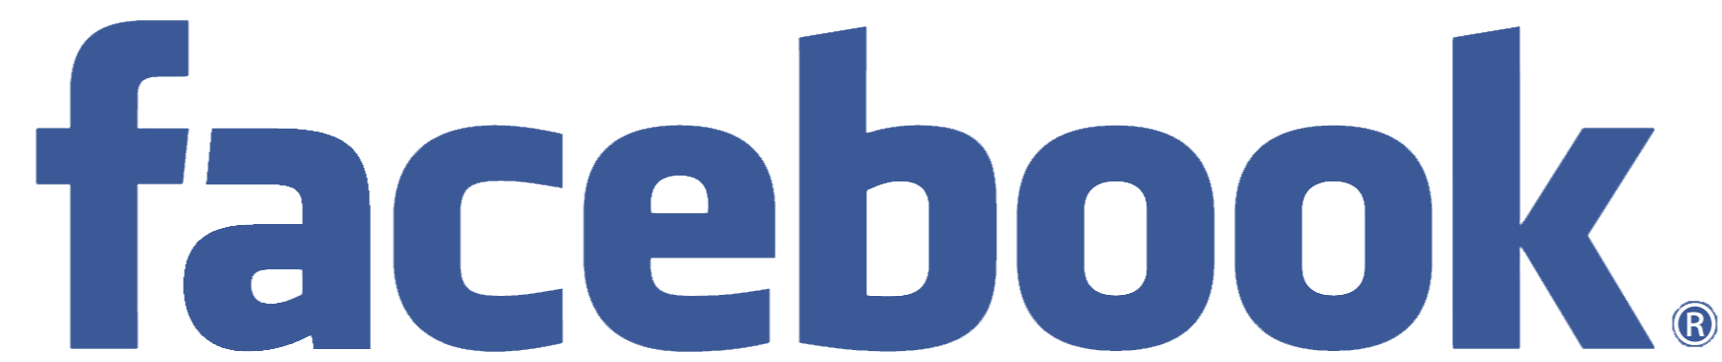 facebook logos PNG19749 - #1 Industrial Training Company In Chandigarh|Mohali